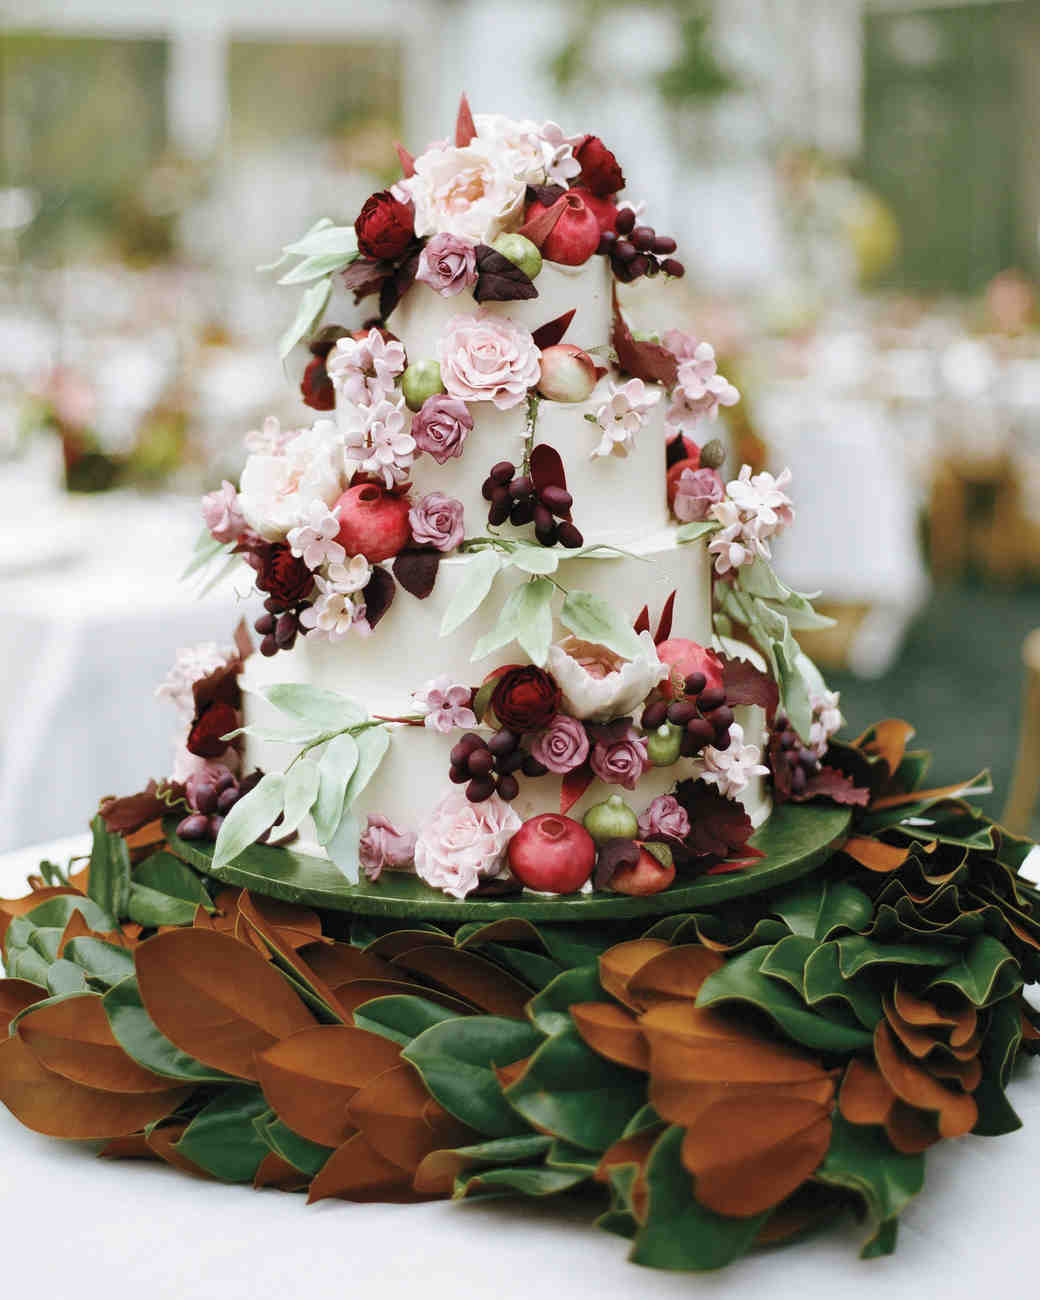 Fall Wedding Cake with Foliage and Flowers